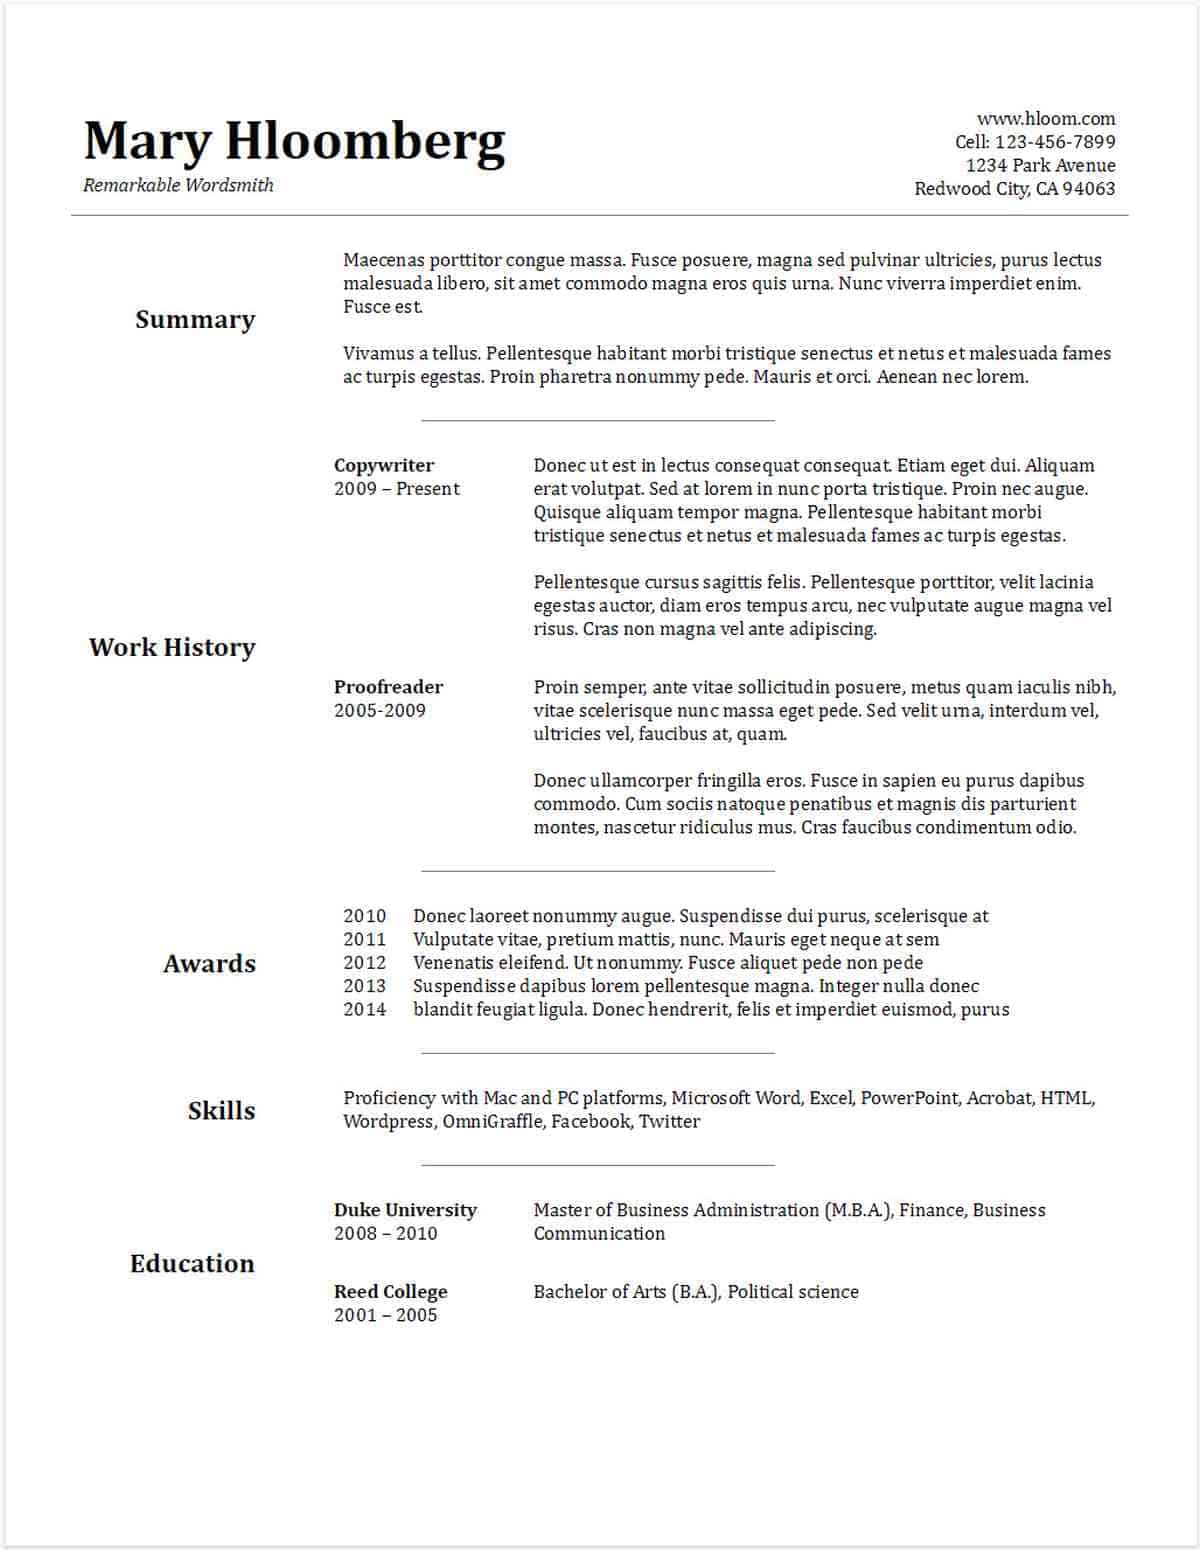 Goldfish Bowl Gdoc | Google Docs Resume Template | Google Docs Resume Templates To Ace Your Next Interview